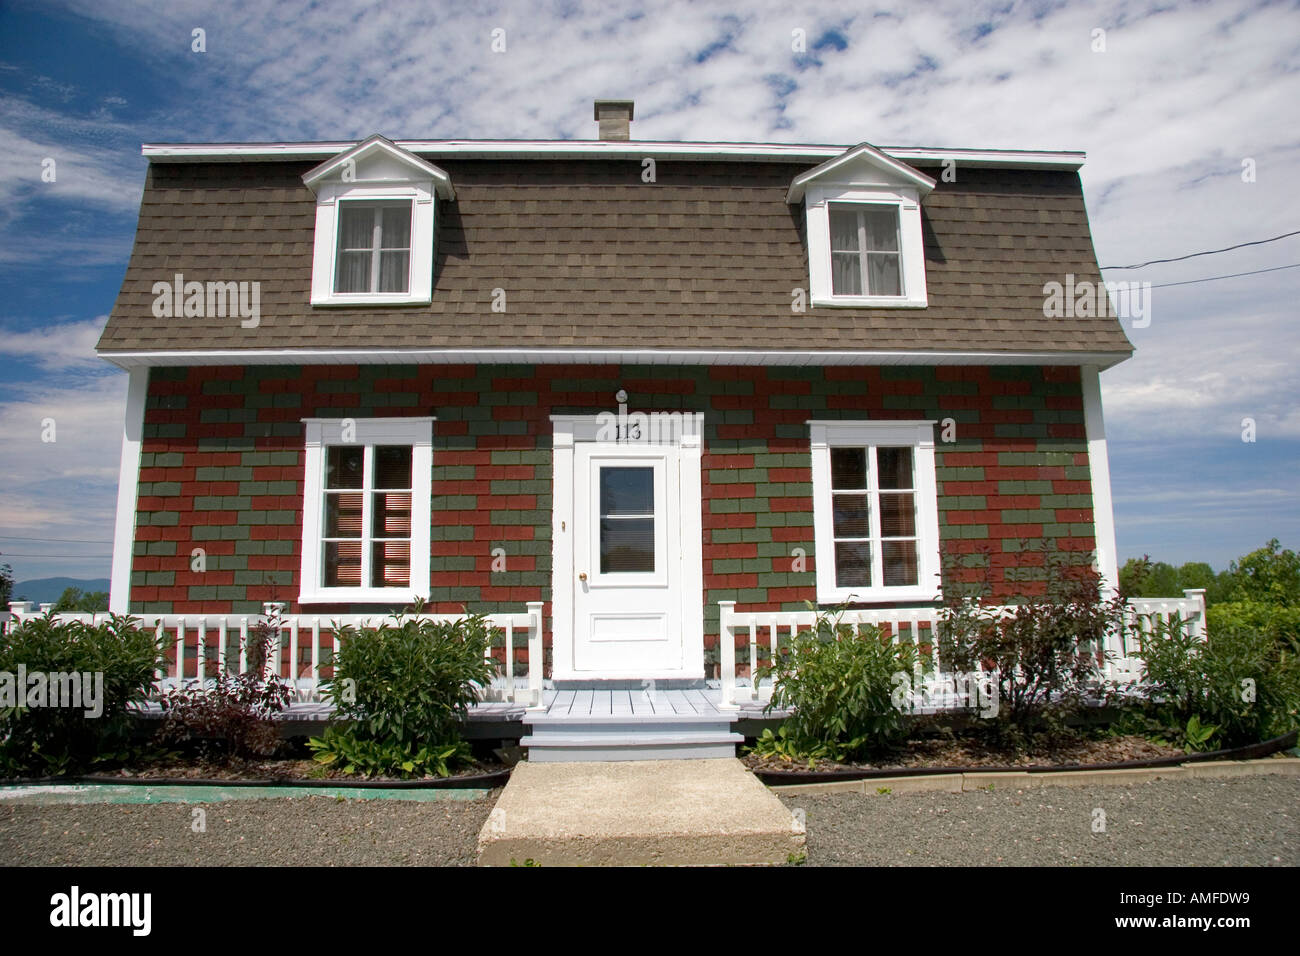 Cottage Style Homes In A Rural Area Along The St. Lawrence River At  Lu0027lslet, Quebec, Canada.